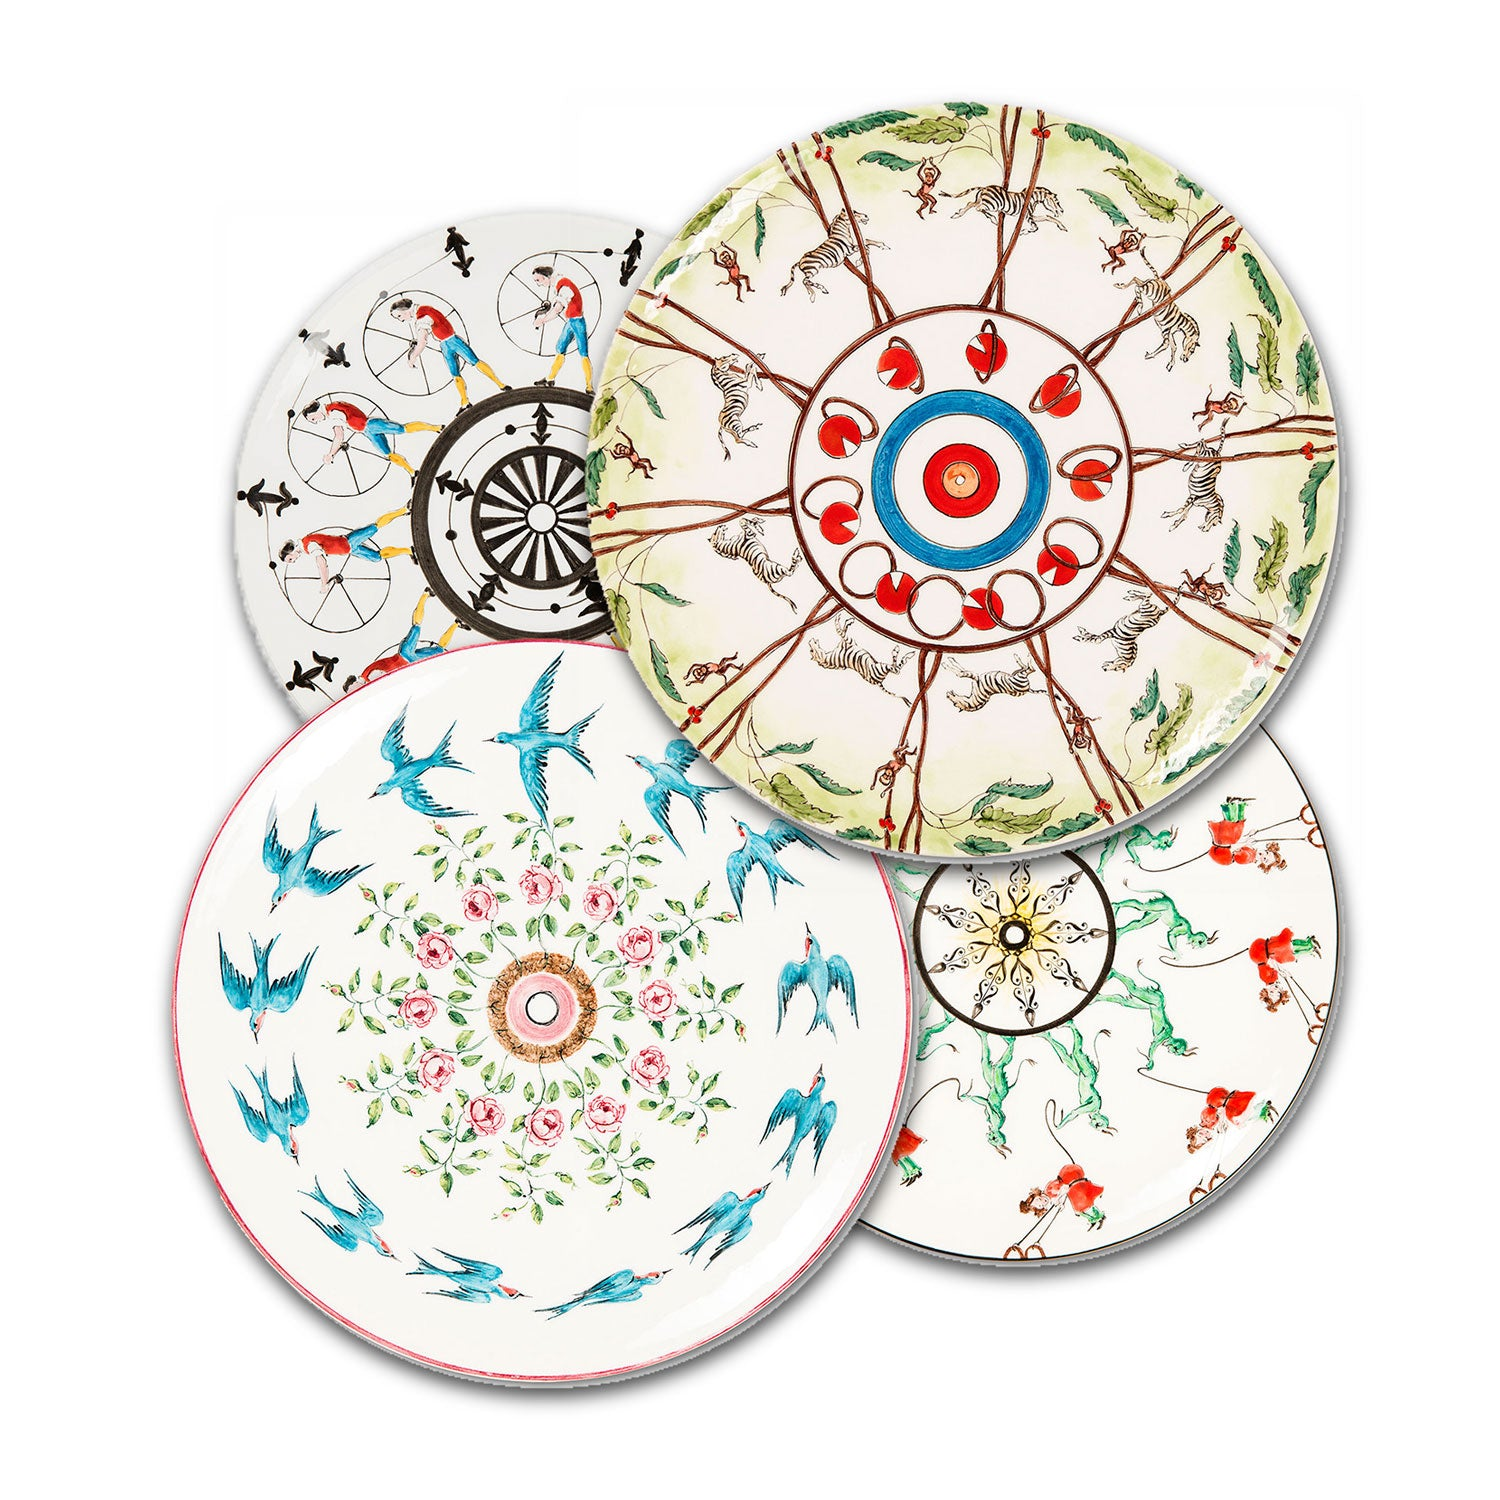 Playplates Swallows Dinner Plate (25cm)